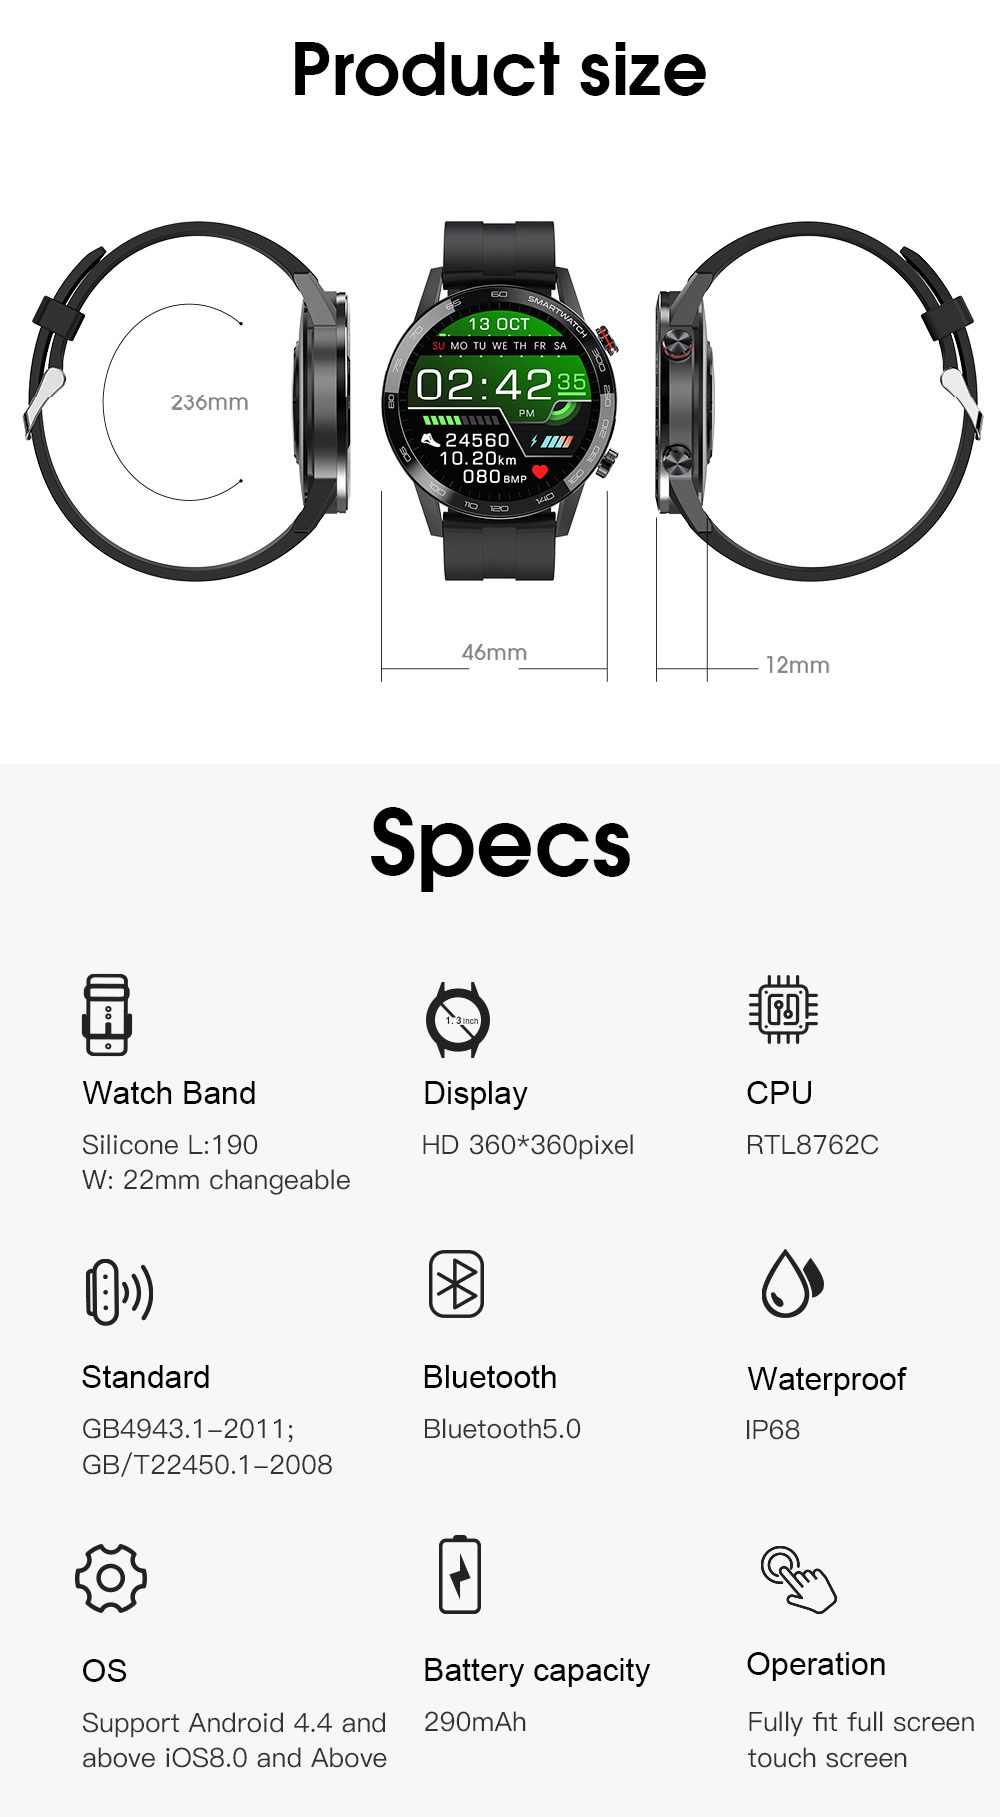 Hc344e41c743f4455977fce8af981b6293 Reloj Inteligente Hombre Smartwatch Ecg Ppg IP68 Smarthwatch Men Full Touch Smart Watch 2020 For Huawei Xiaomi Android Apple IOS